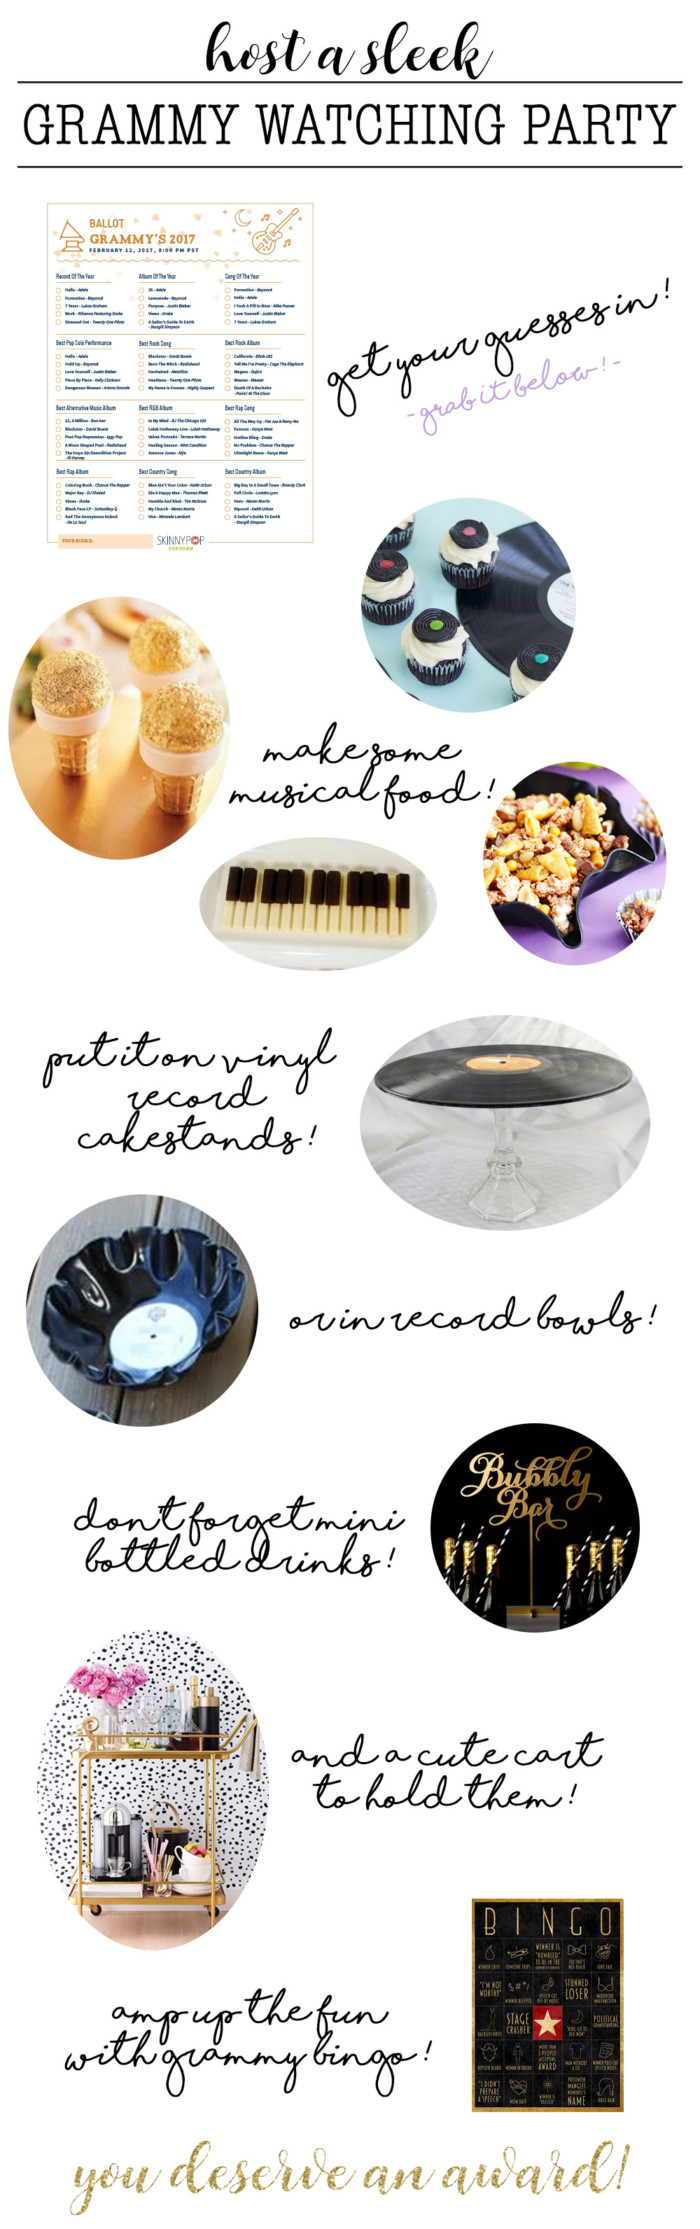 Host a sleek grammy party this year with these fun music-related foods and crafts!